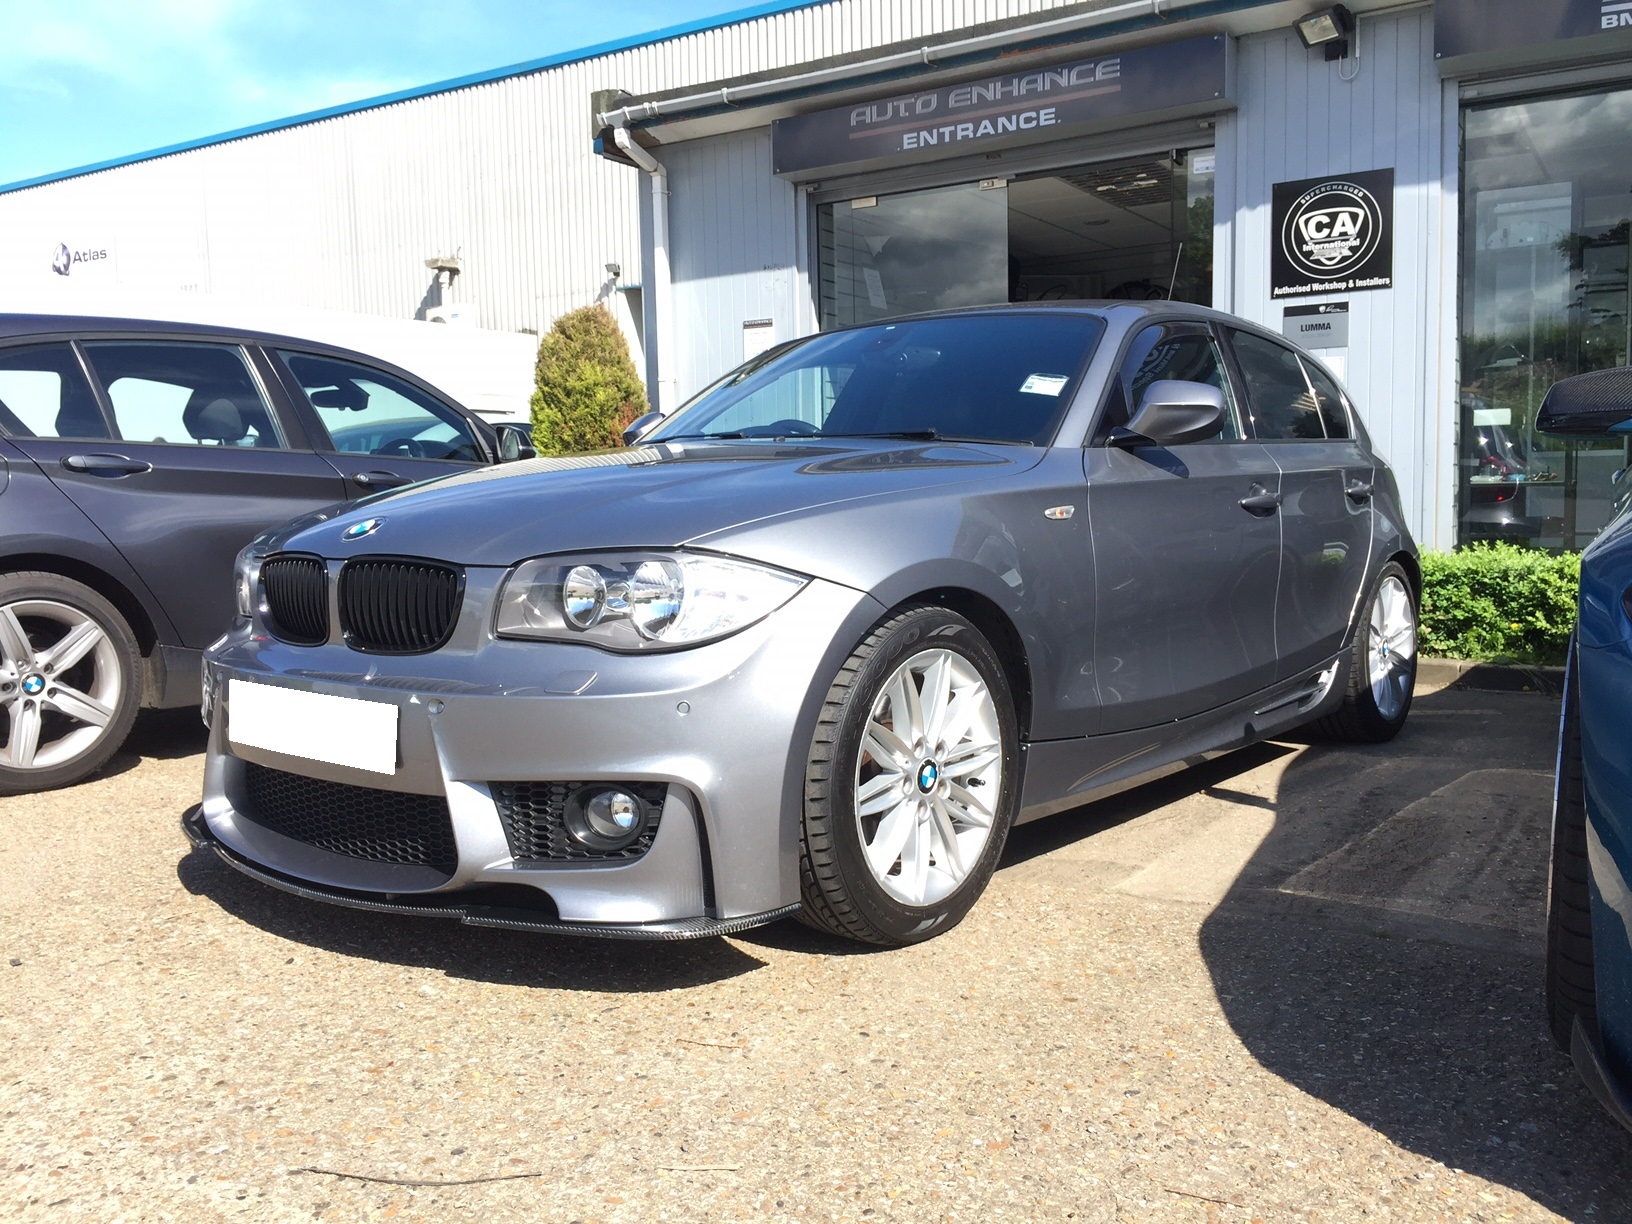 E87 - Exterior styling